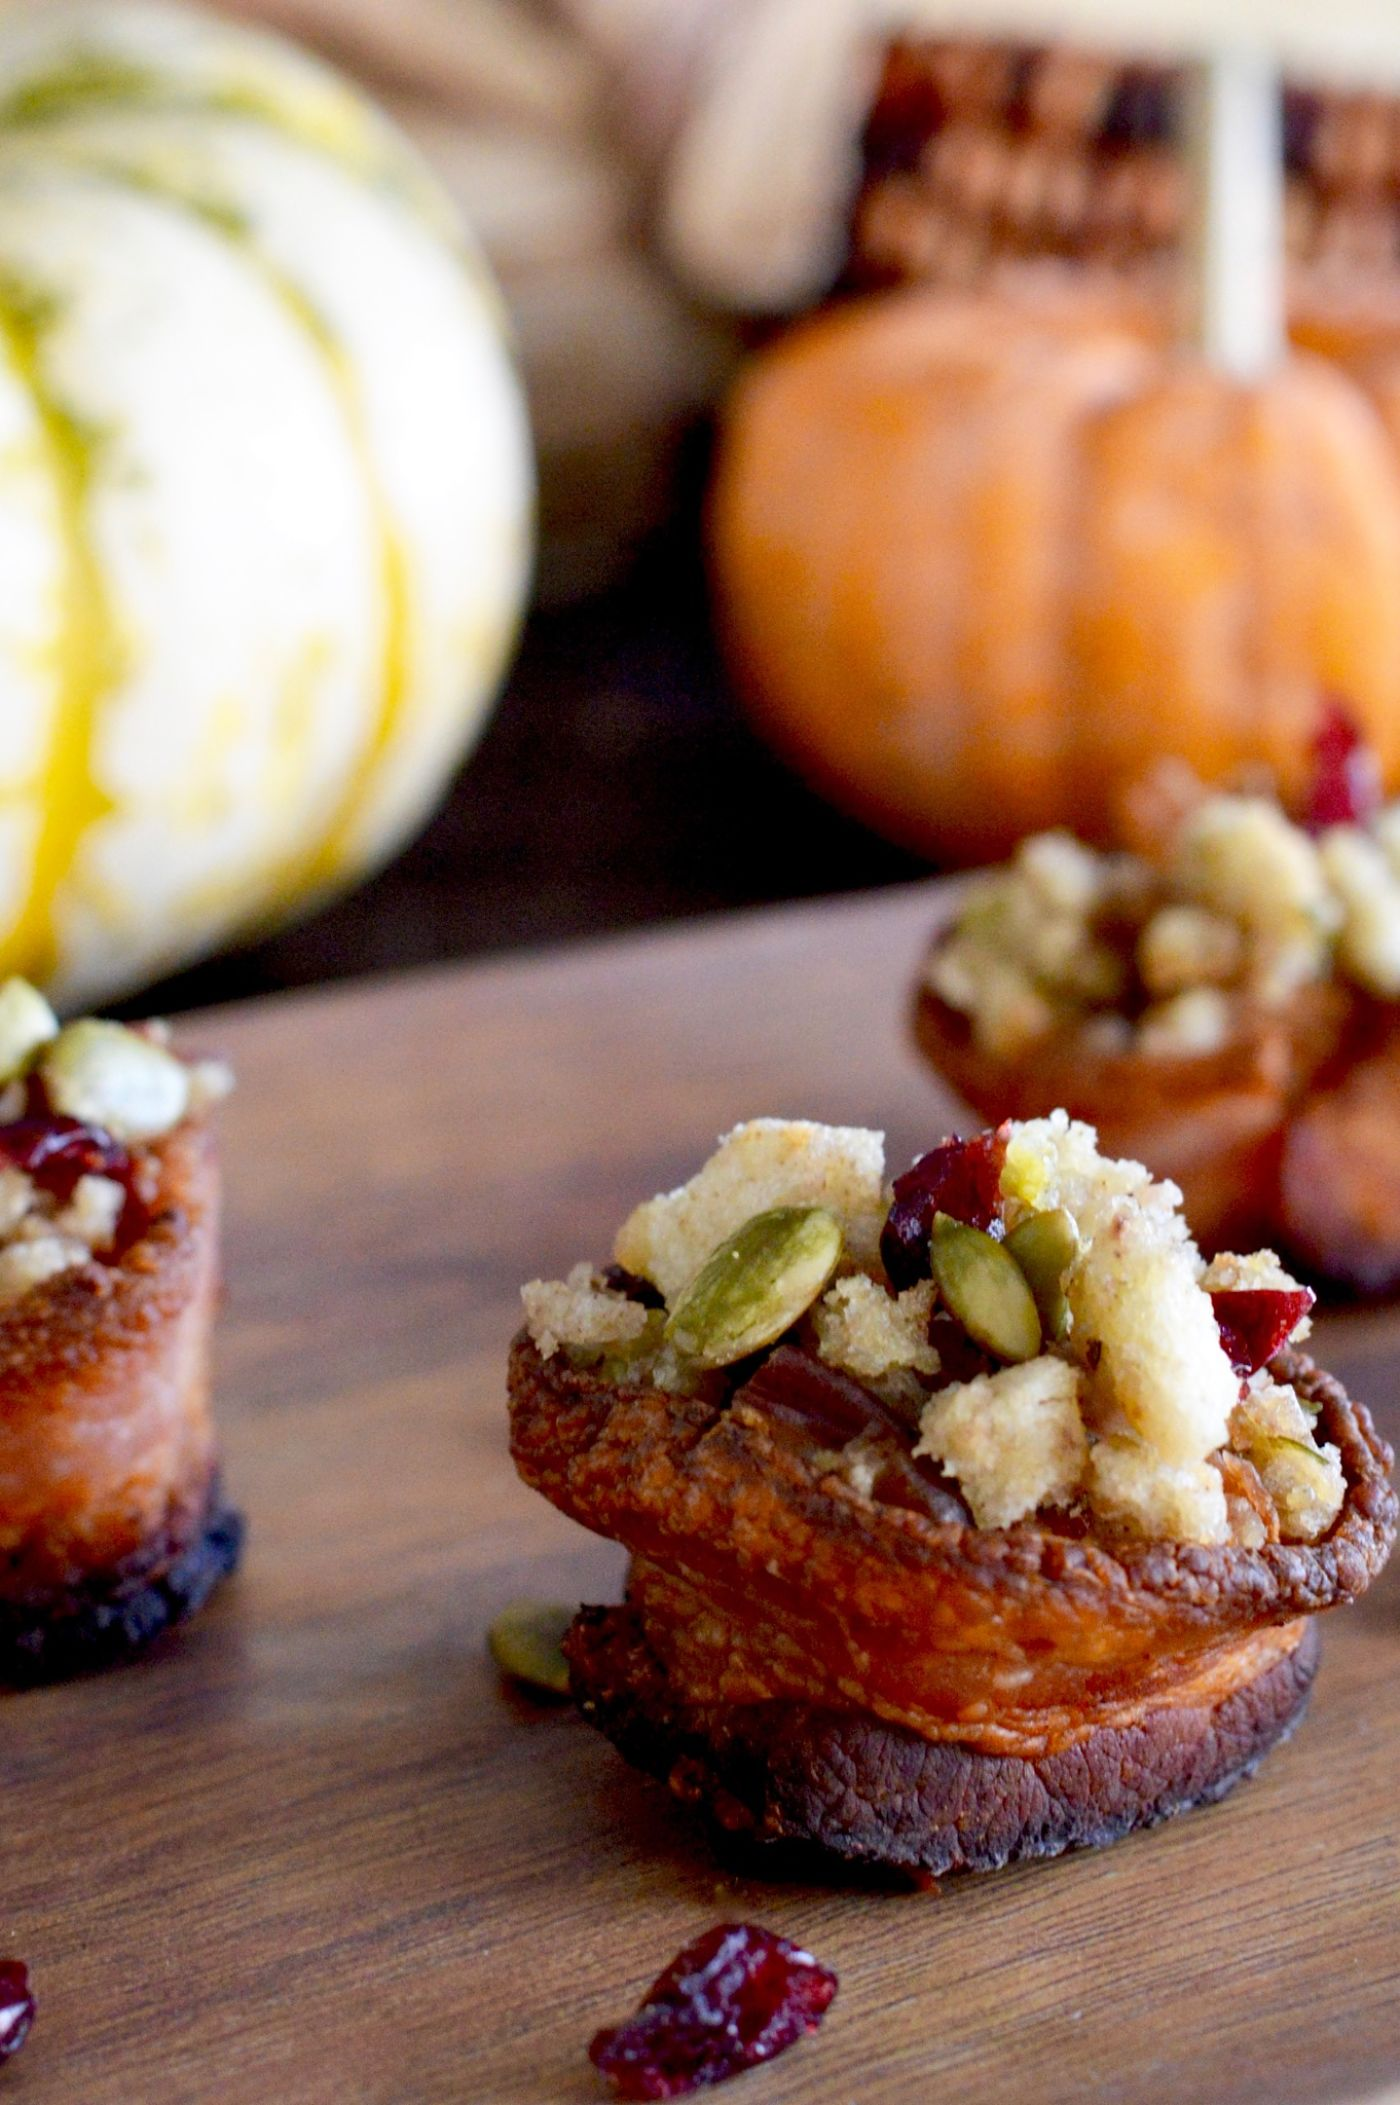 Leftover Stuffing Bacon cups will use up all your leftover stuffing! Make bacon cups, spoon the stuffing in, top with some cranberries and nuts and you have a delicious bite sized snack!